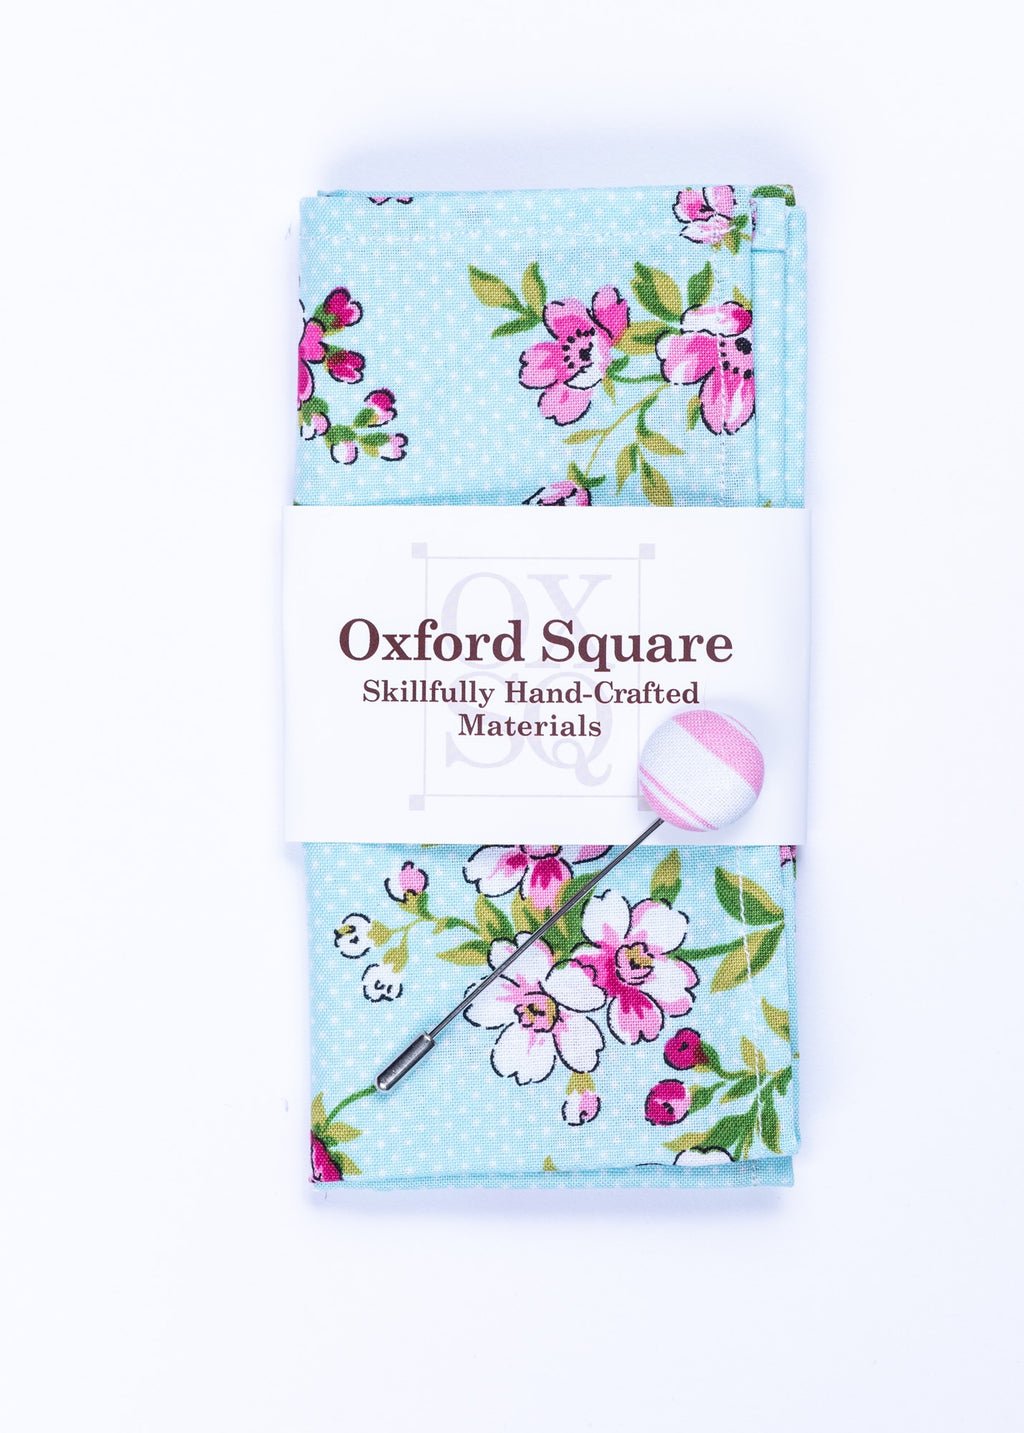 blue floral pattern pocket square and lapel pin pack - Oxford Square